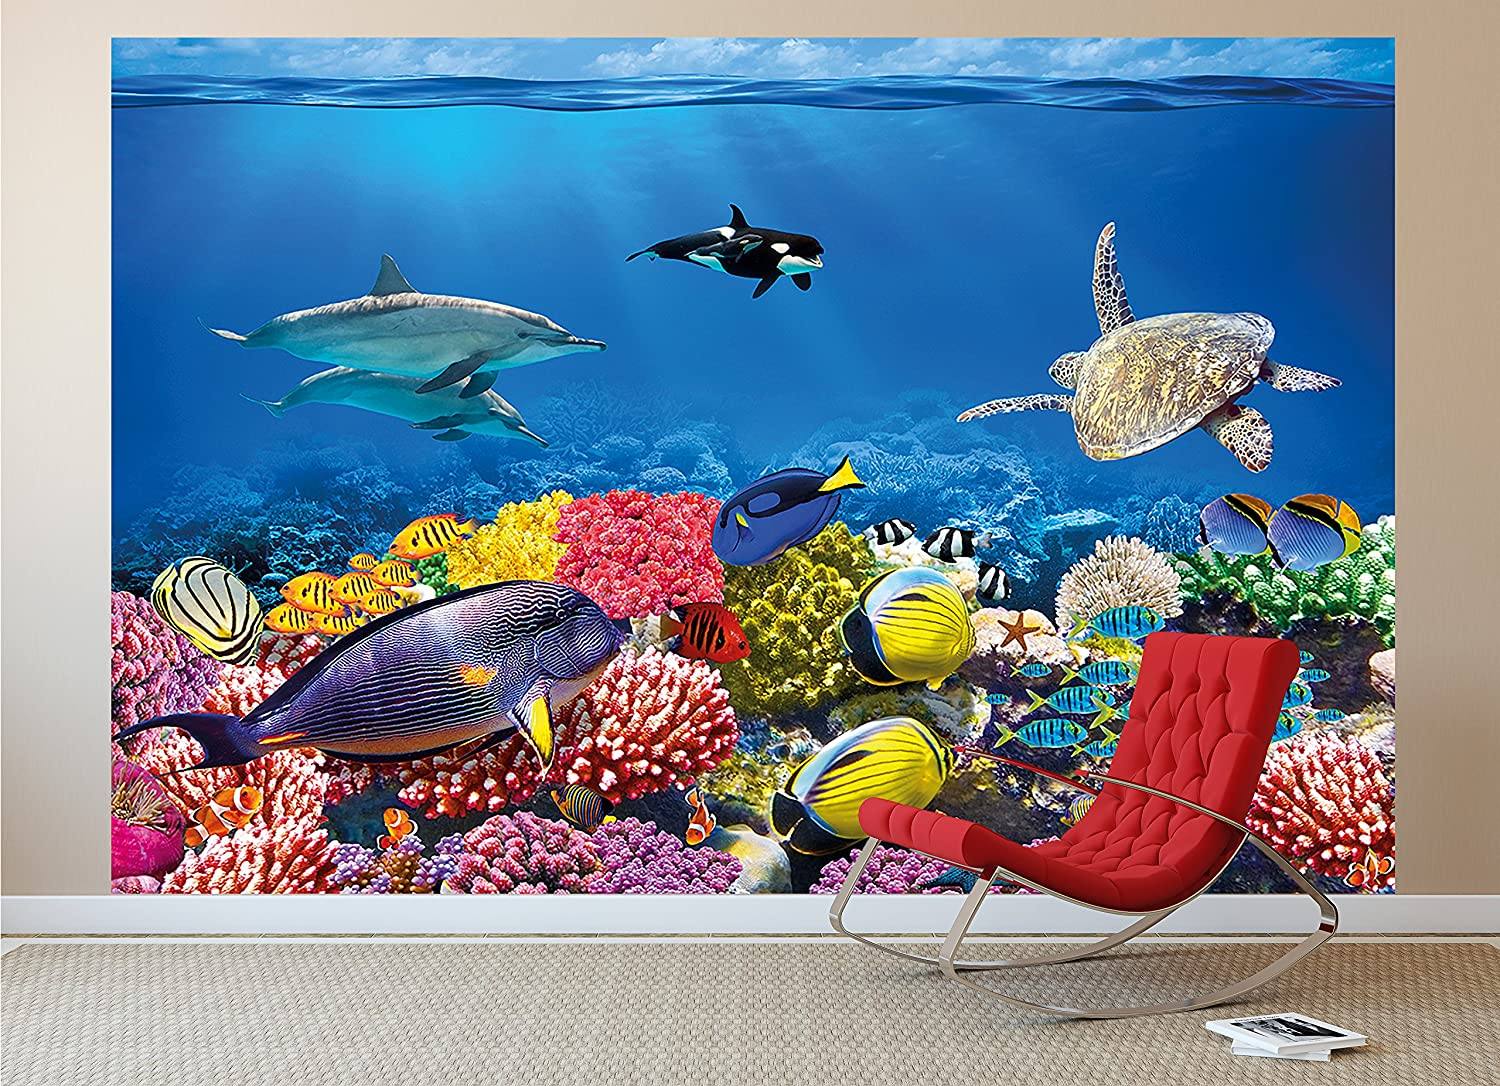 amazon com wall mural aquarium mural decoration colourful amazon com wall mural aquarium mural decoration colourful underwater world sea dweller ocean fishes dolphin coral reef clownfish i paperhanging wallpaper